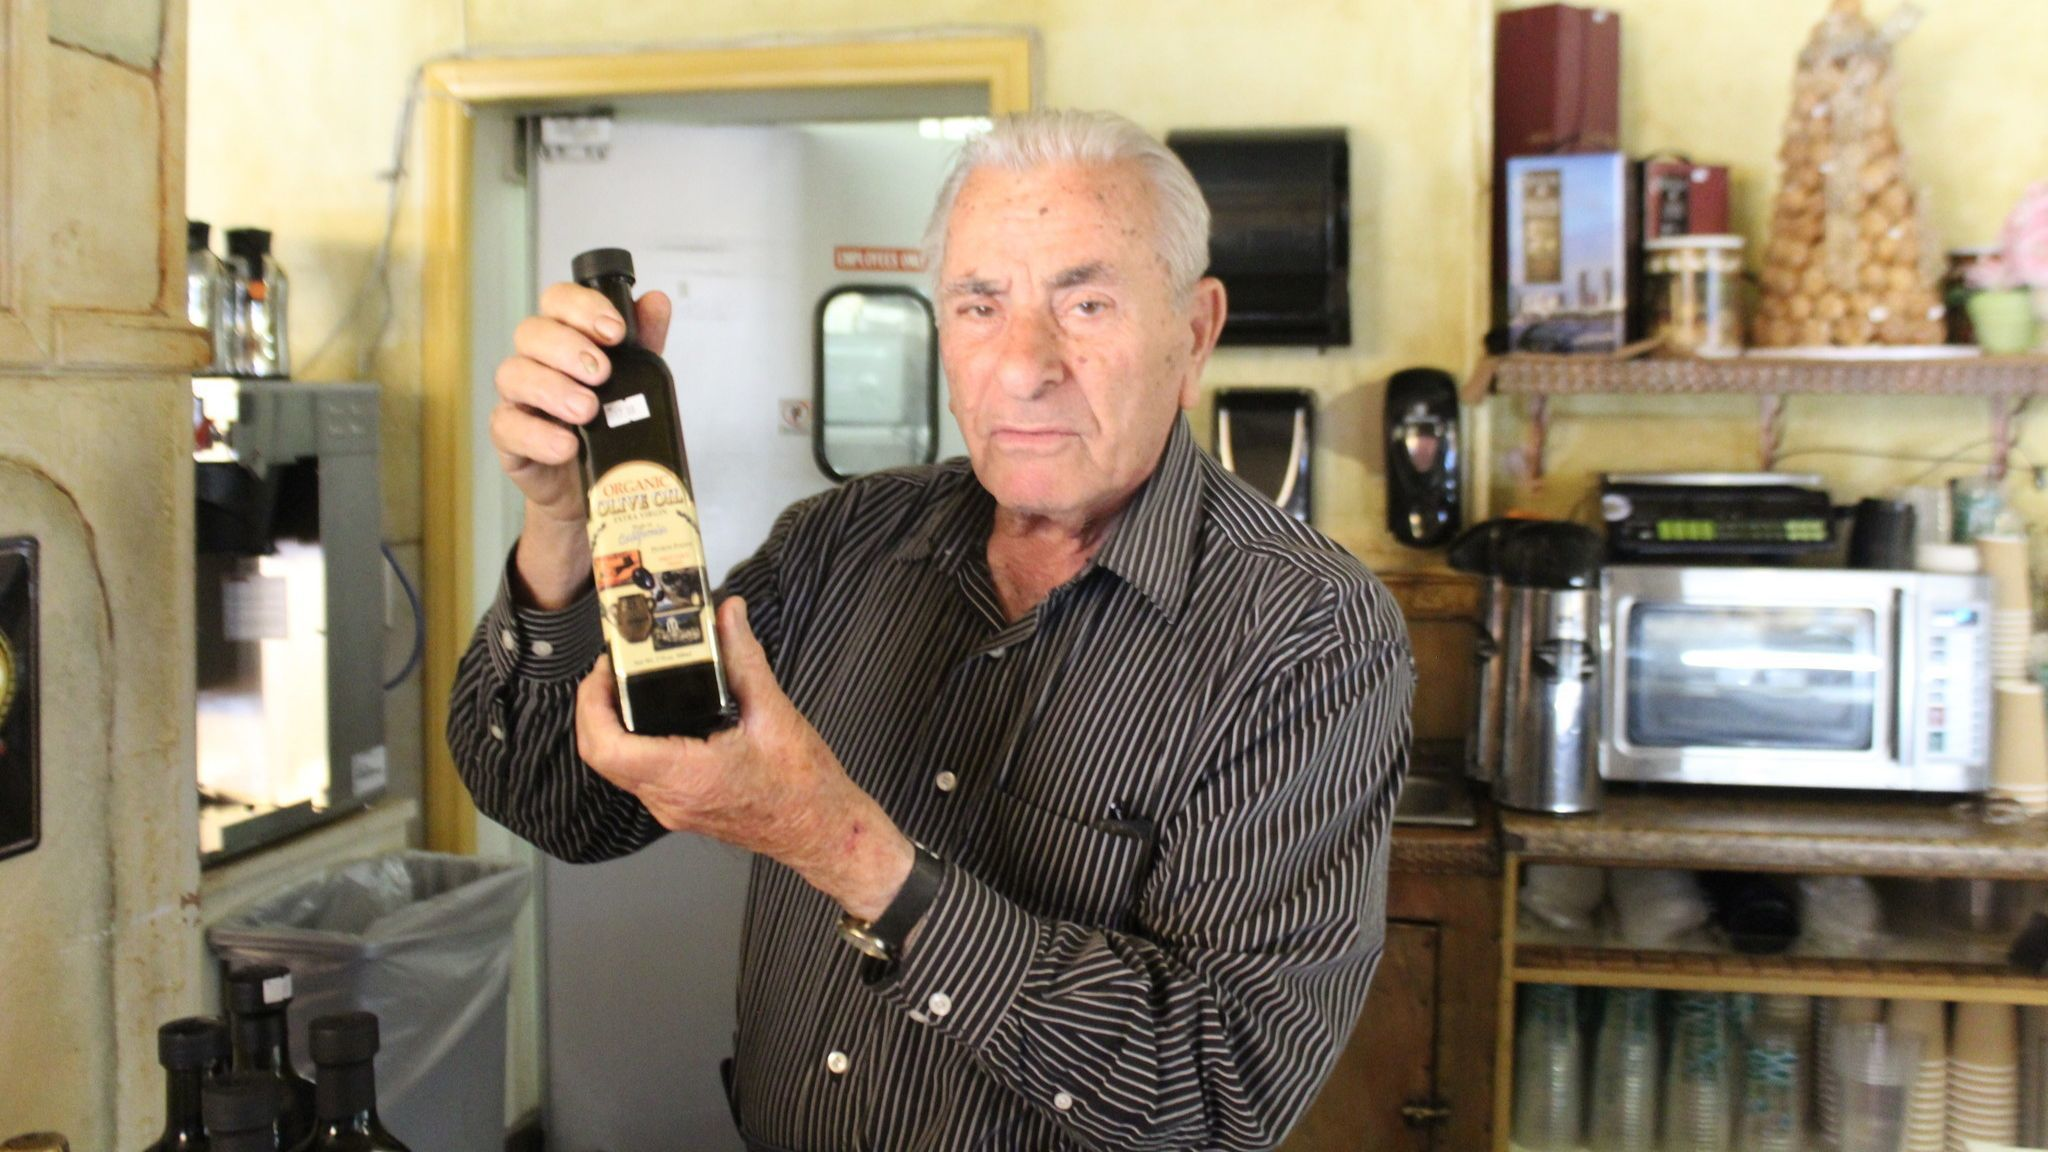 George Petrou shows off the olive oil he manufactures and sells in his second career.